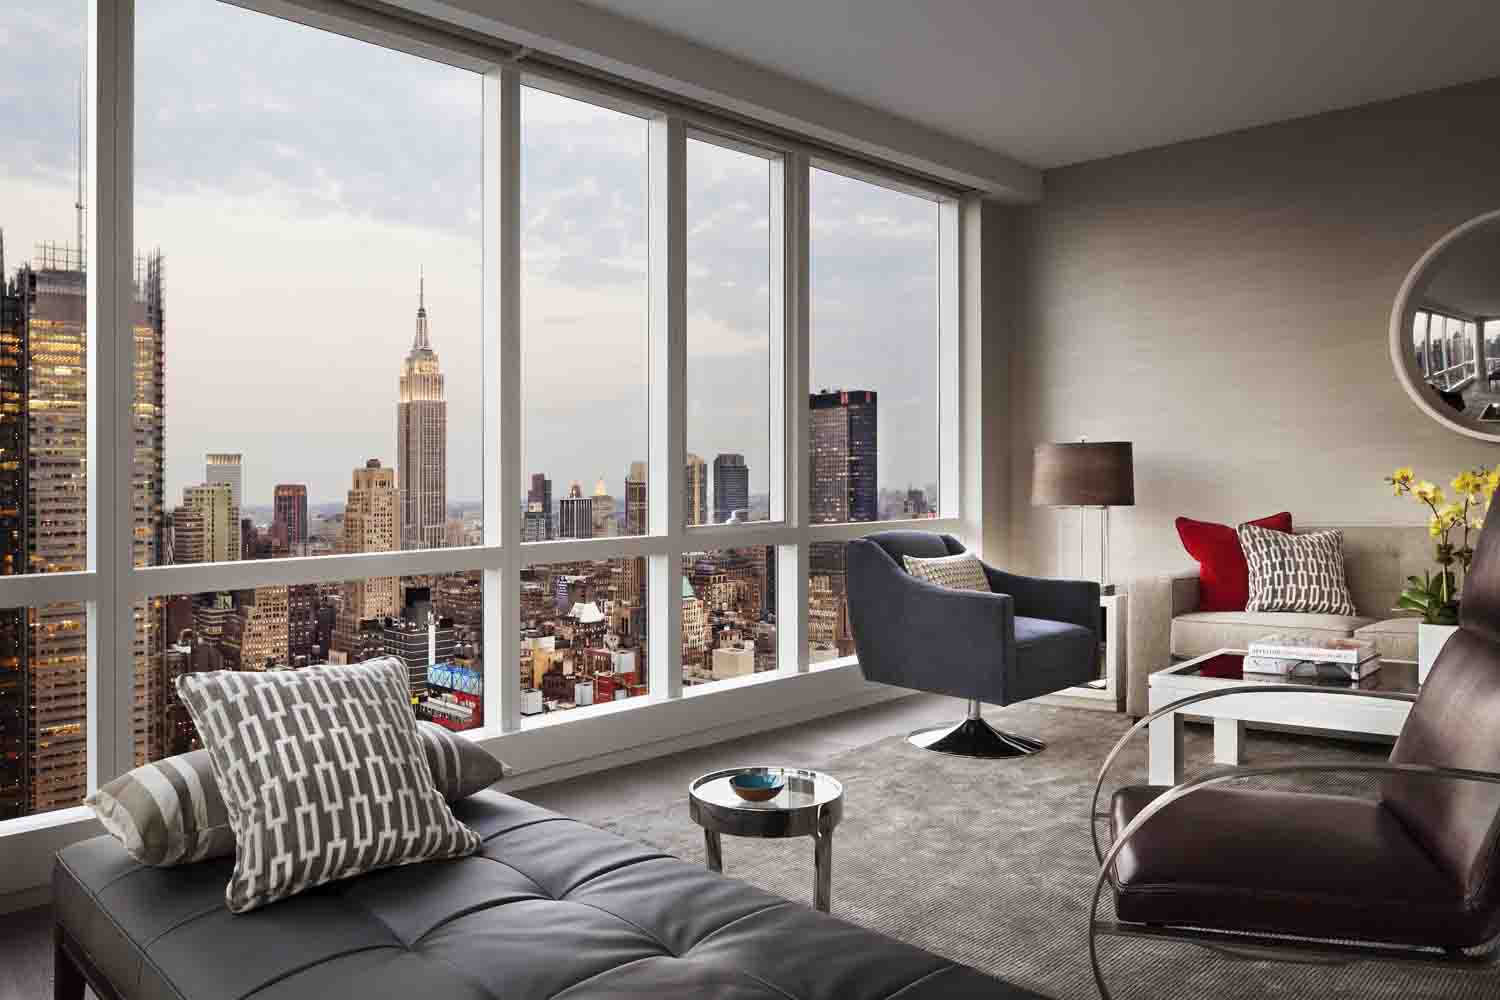 Merveilleux Tags: 15 Central Park West · Manhattan Luxury Rental Apartments ...